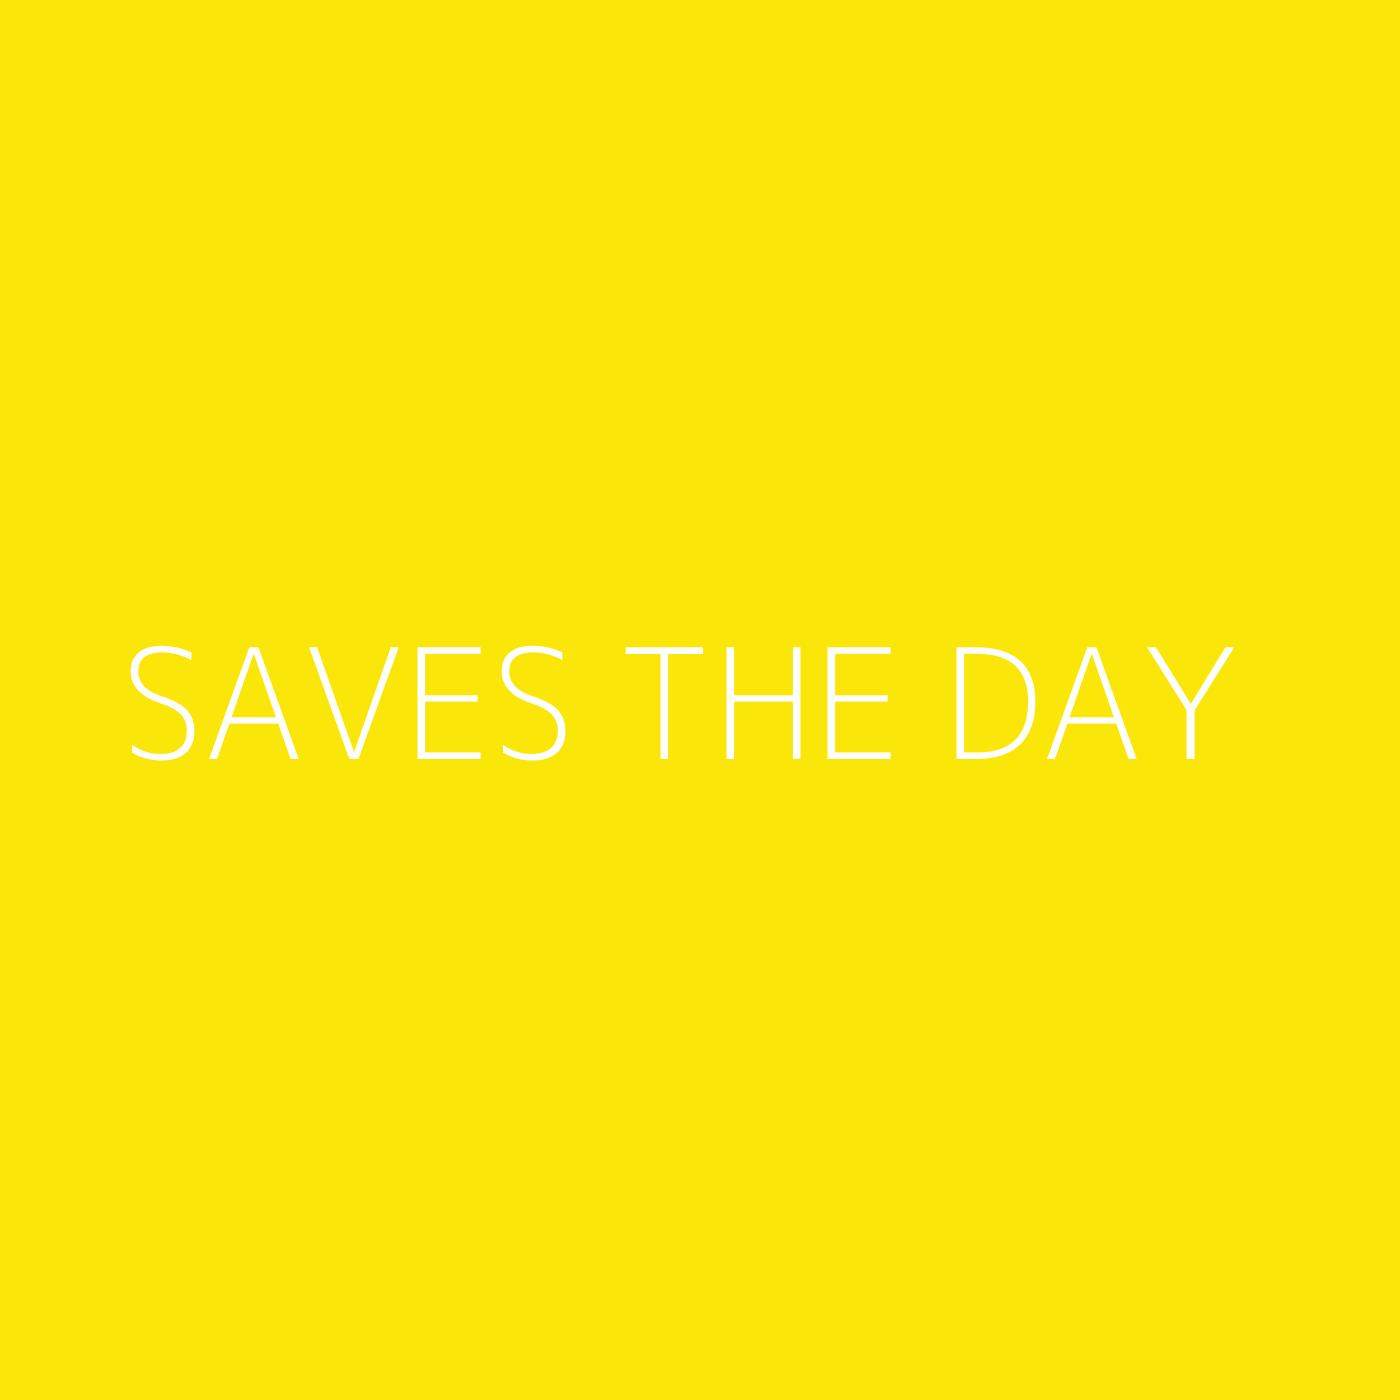 Saves The Day Playlist Artwork